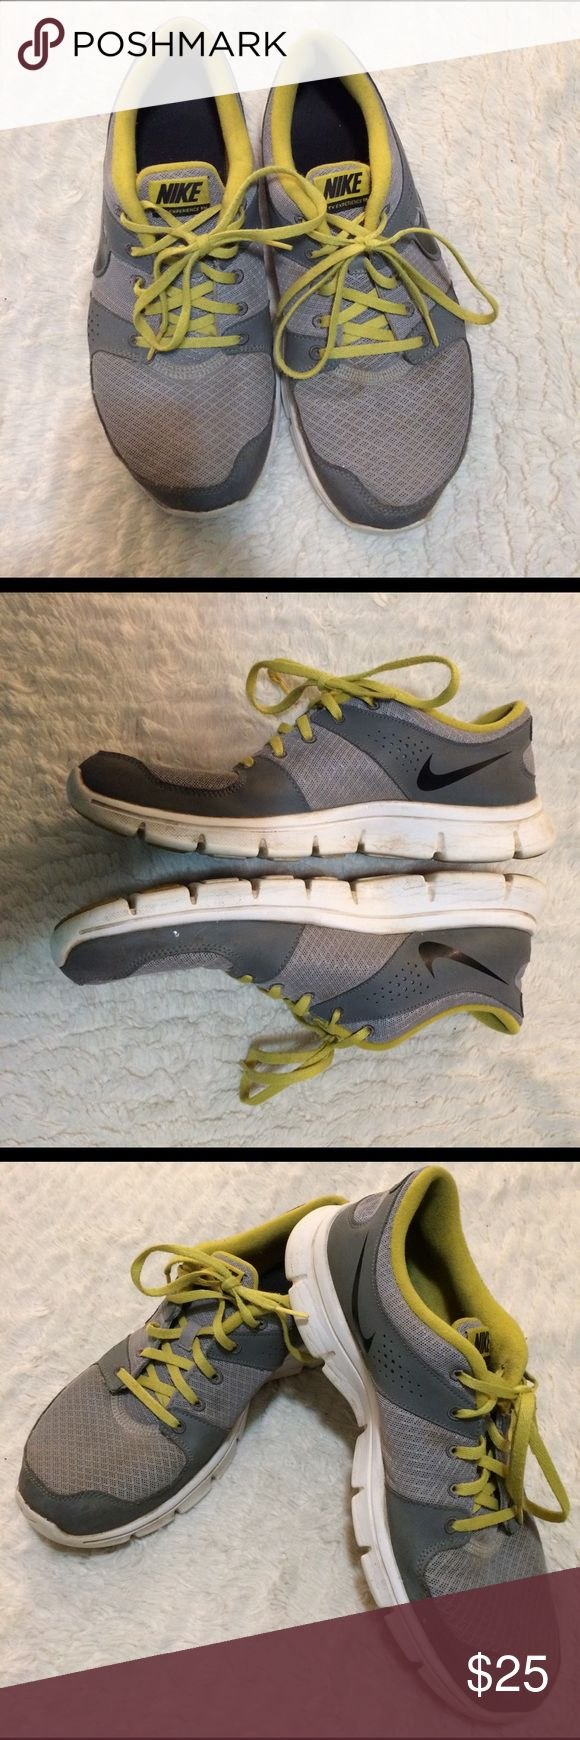 Men's Nike flex experience running shoes size 10 Men's Nike athletic shoes. Size 10. Still have a lot of life left. They are gray and white with bright yellow detail. Please see photos for extra details. Sold as is. Nike Shoes Sneakers